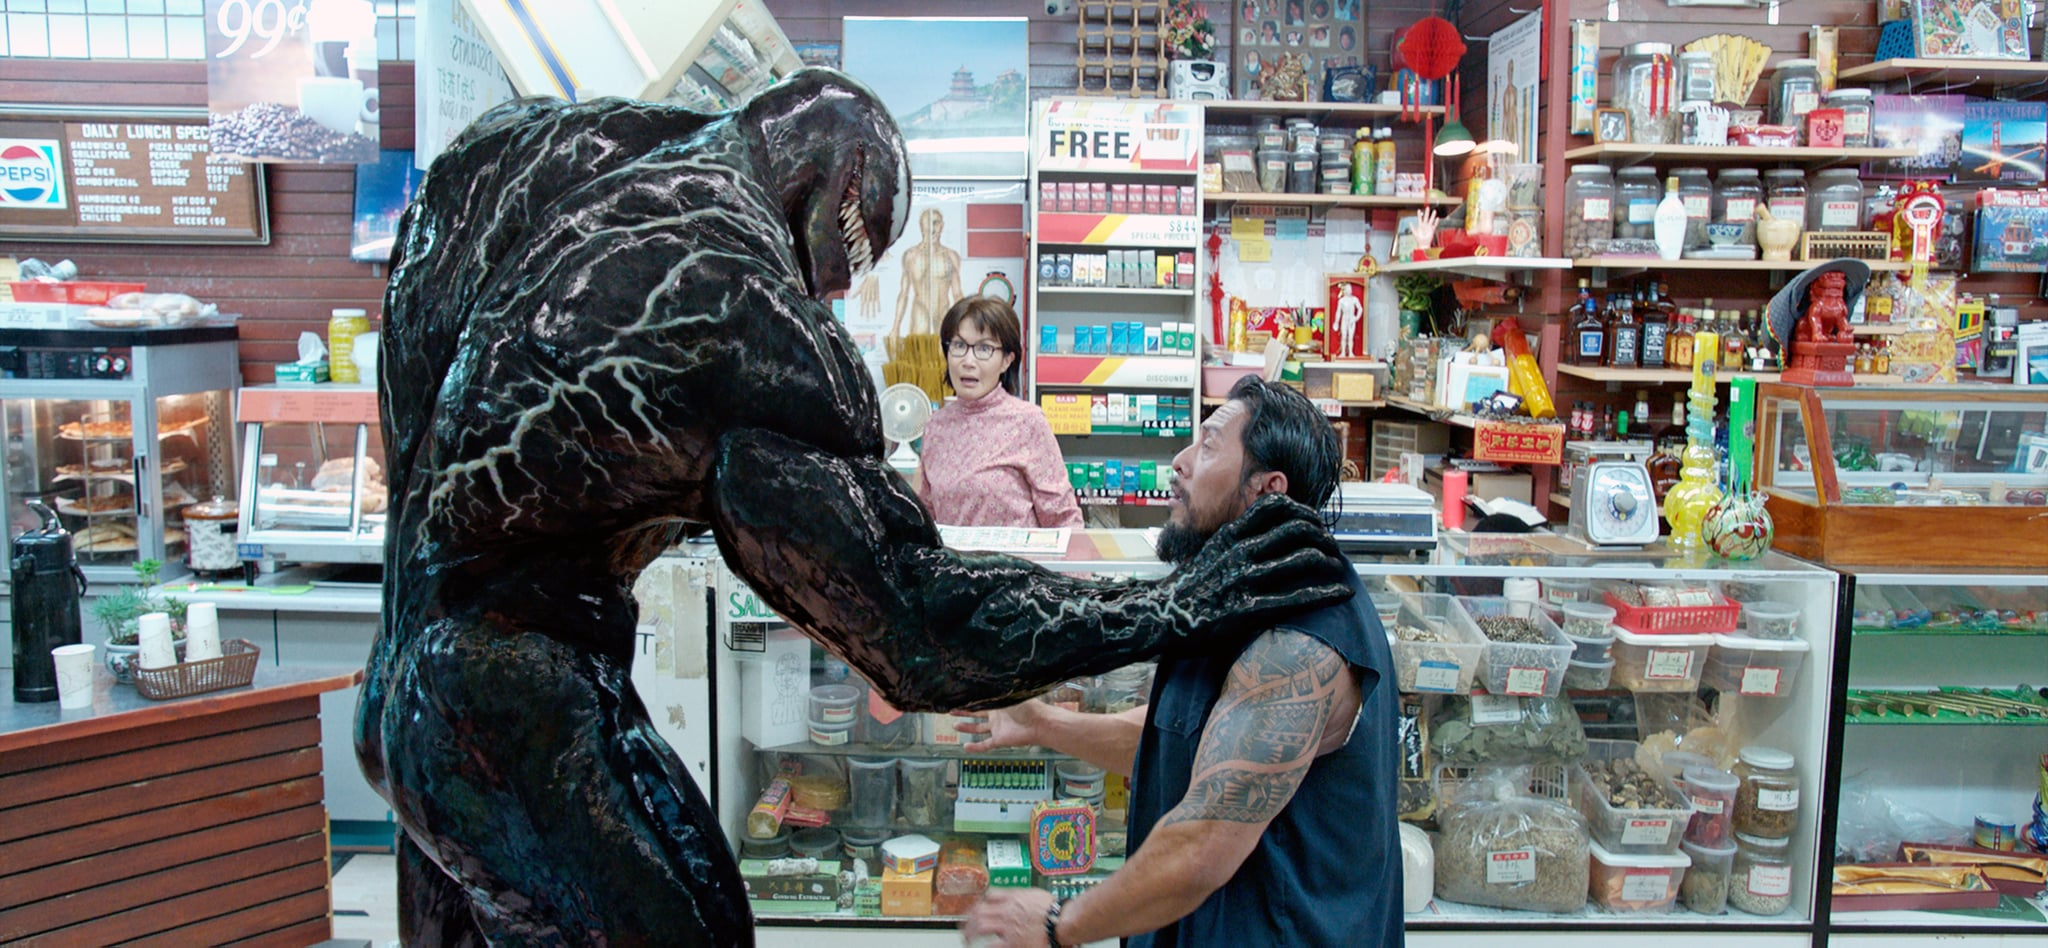 Venom (Tom Hardy) deals with a petty hood while convenience store owner Mrs Chen (Peggy Lu) looks on in Venom (2018)